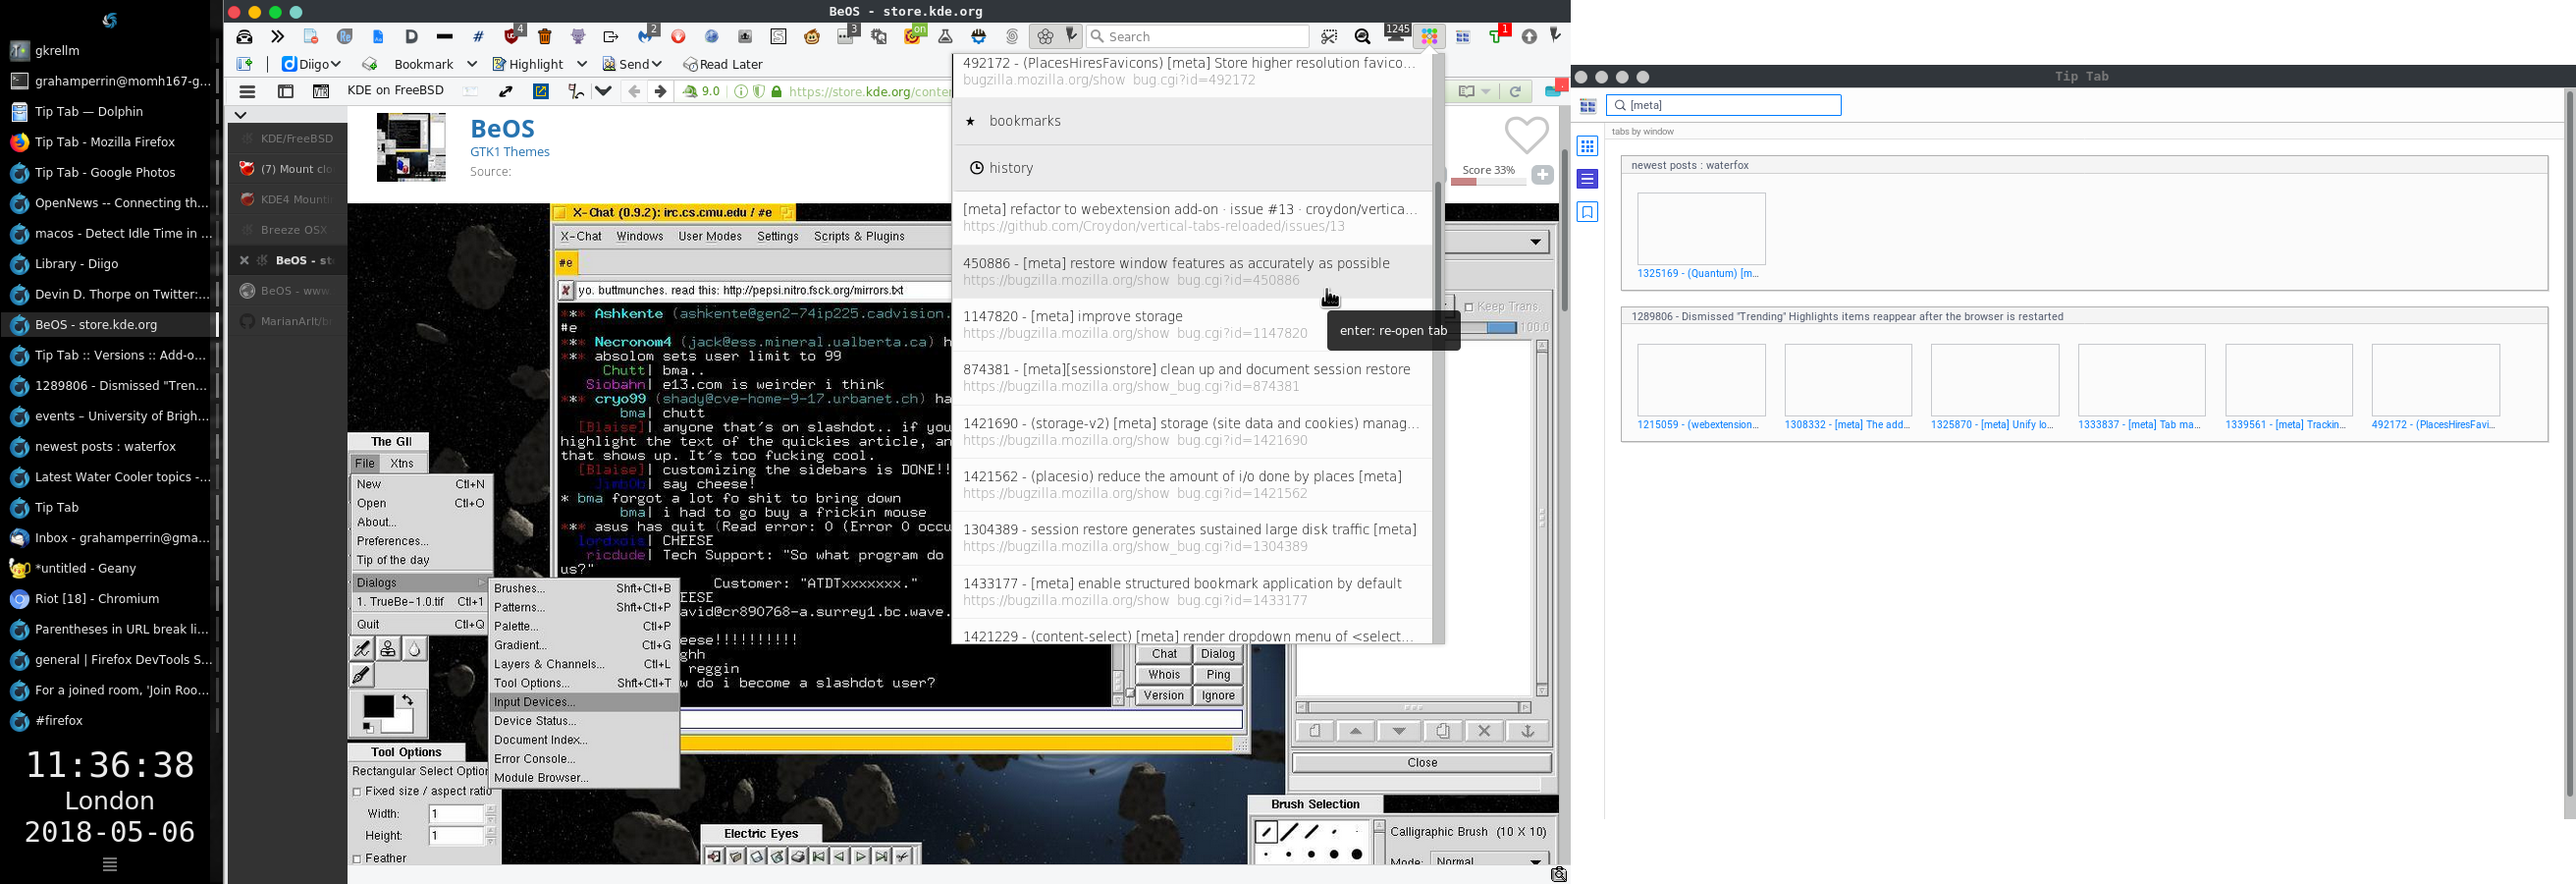 2018-05-06 11 36 19 conex tip tab and popup with waterfox